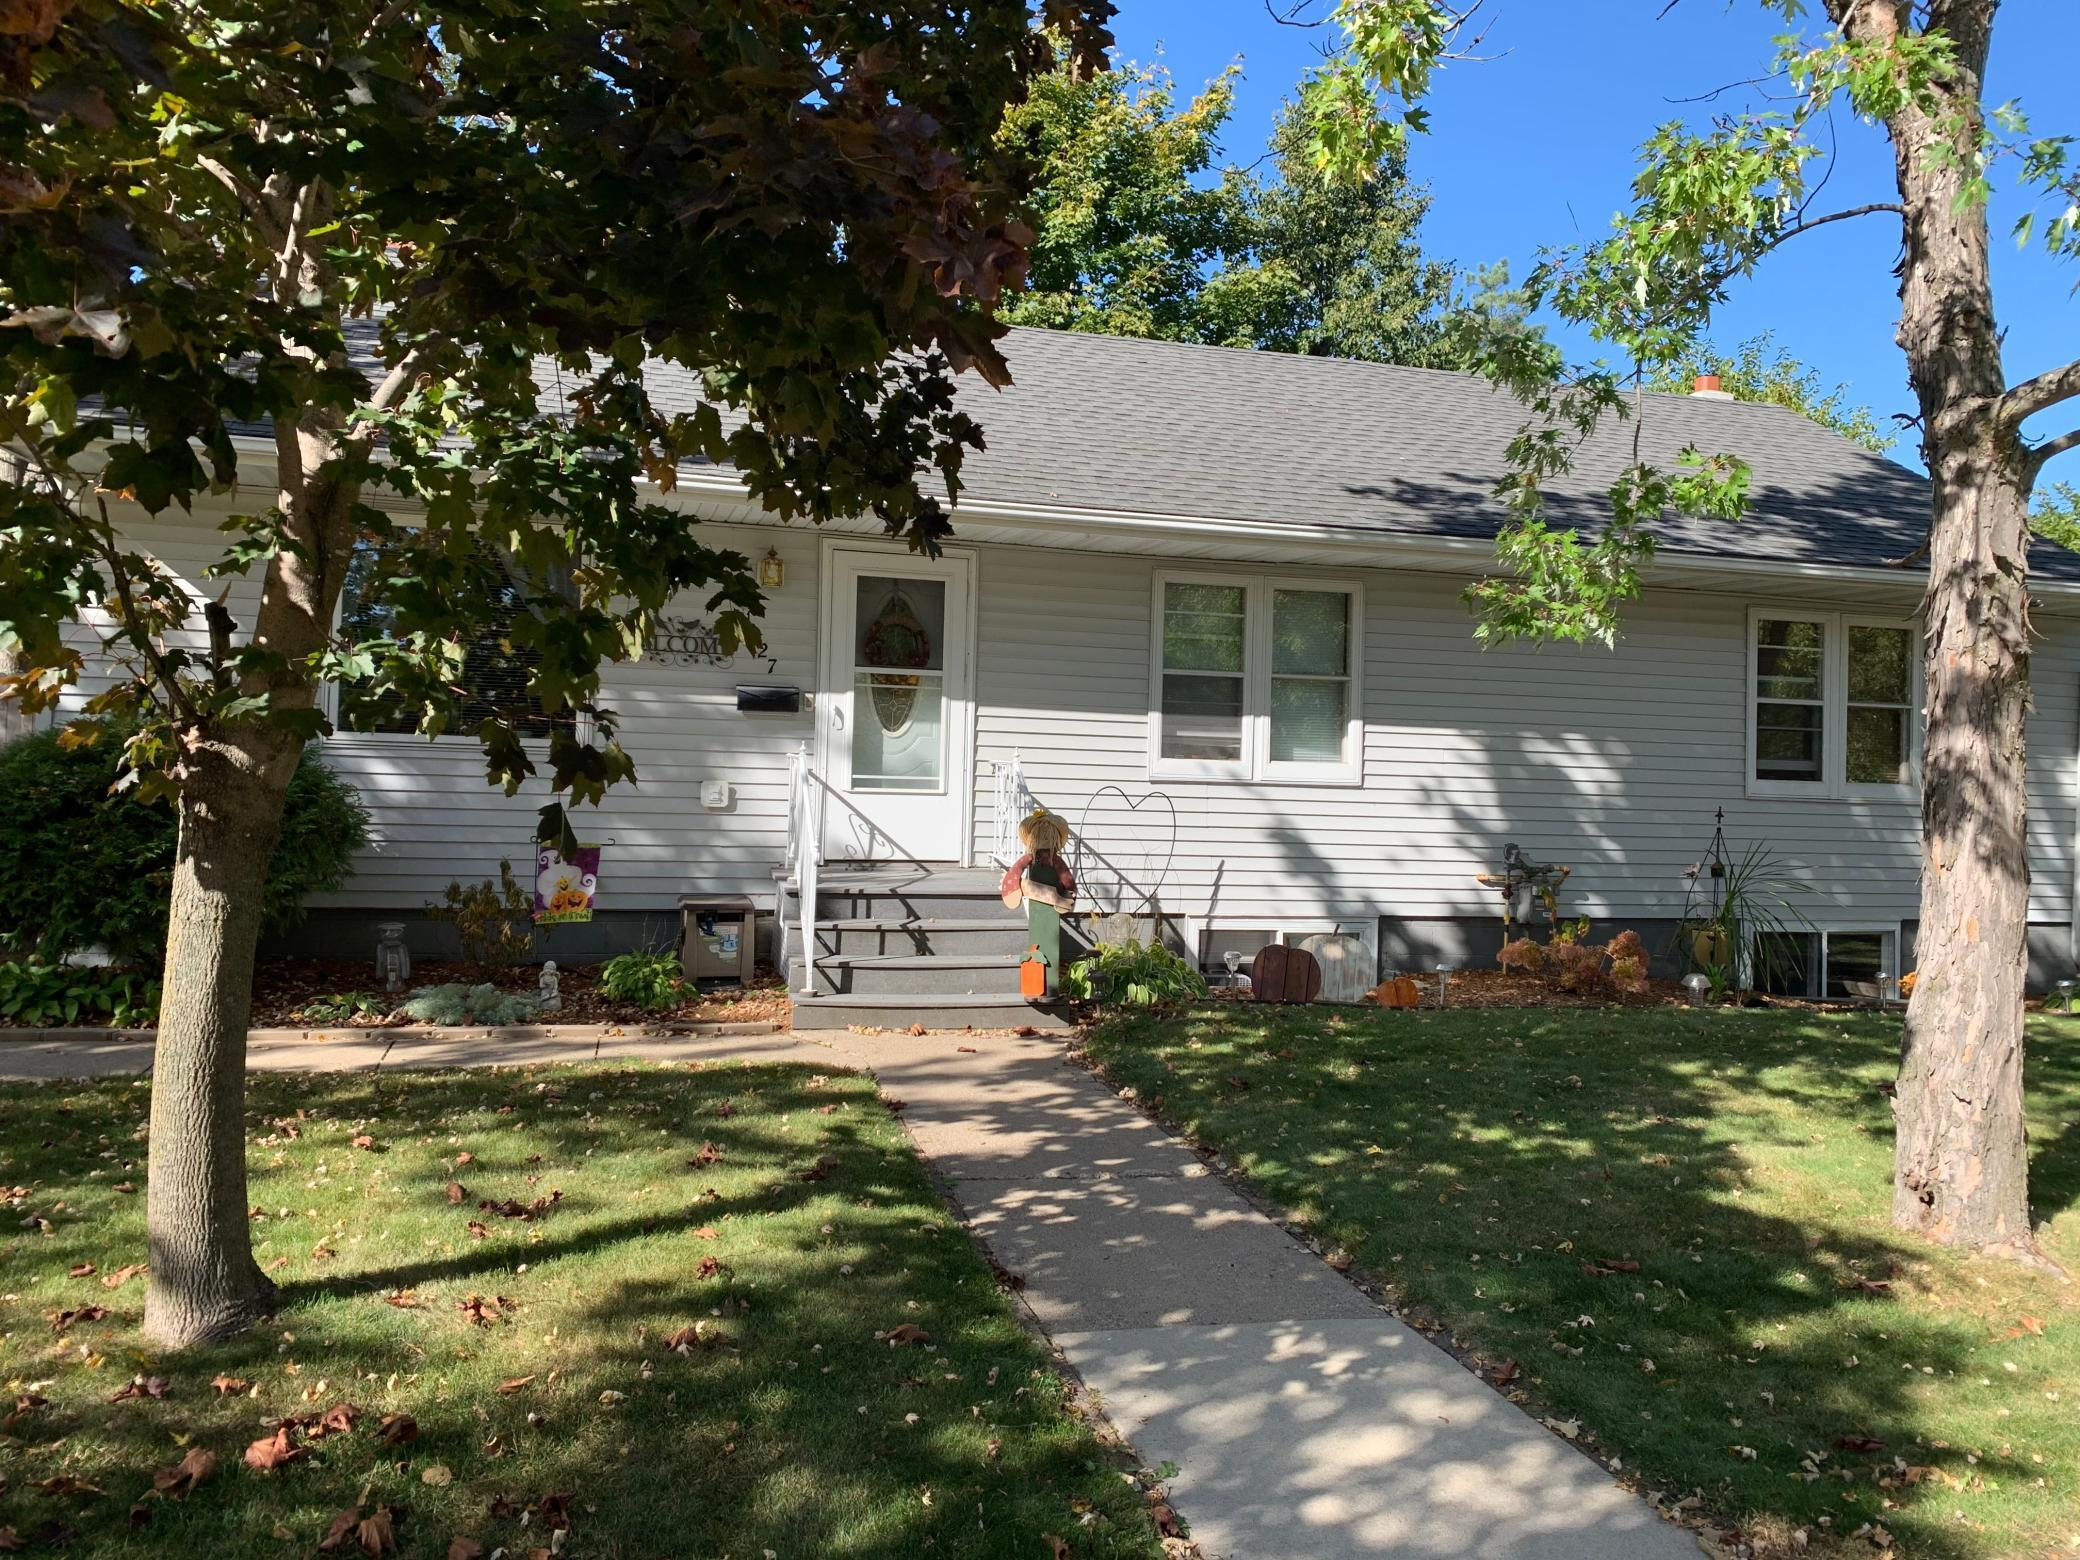 Great opportunity to own a wonderful rambler in convenient south side location. 2 Main floor bedrooms with natural hardwood floors as well as main floor laundry is handy for one level living.   Home has many updates! The lower level has its own entry,kitchenette and 3/4 bath for a mother suite or rental. Fenced in back yard and nice deck is beautiful for private entertaining! 4 car garage is a tinker dream!! This will not last long!!